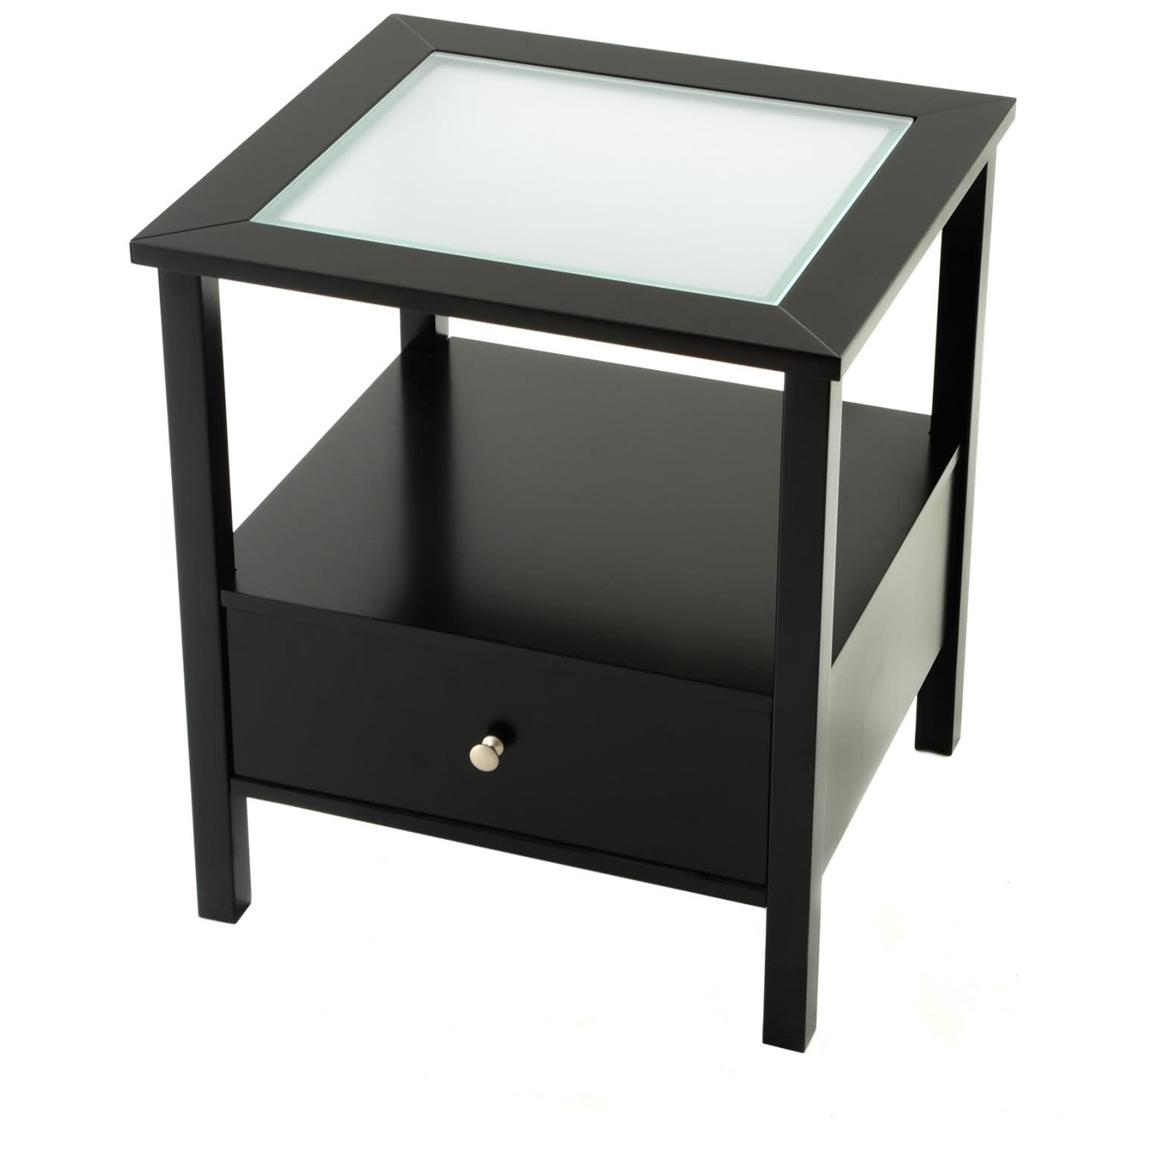 furniture square black staine dwooden end table with frosted glass top and drawers computer desk shelves office winsome wood drawer shelf stained wooden modern home desks tall